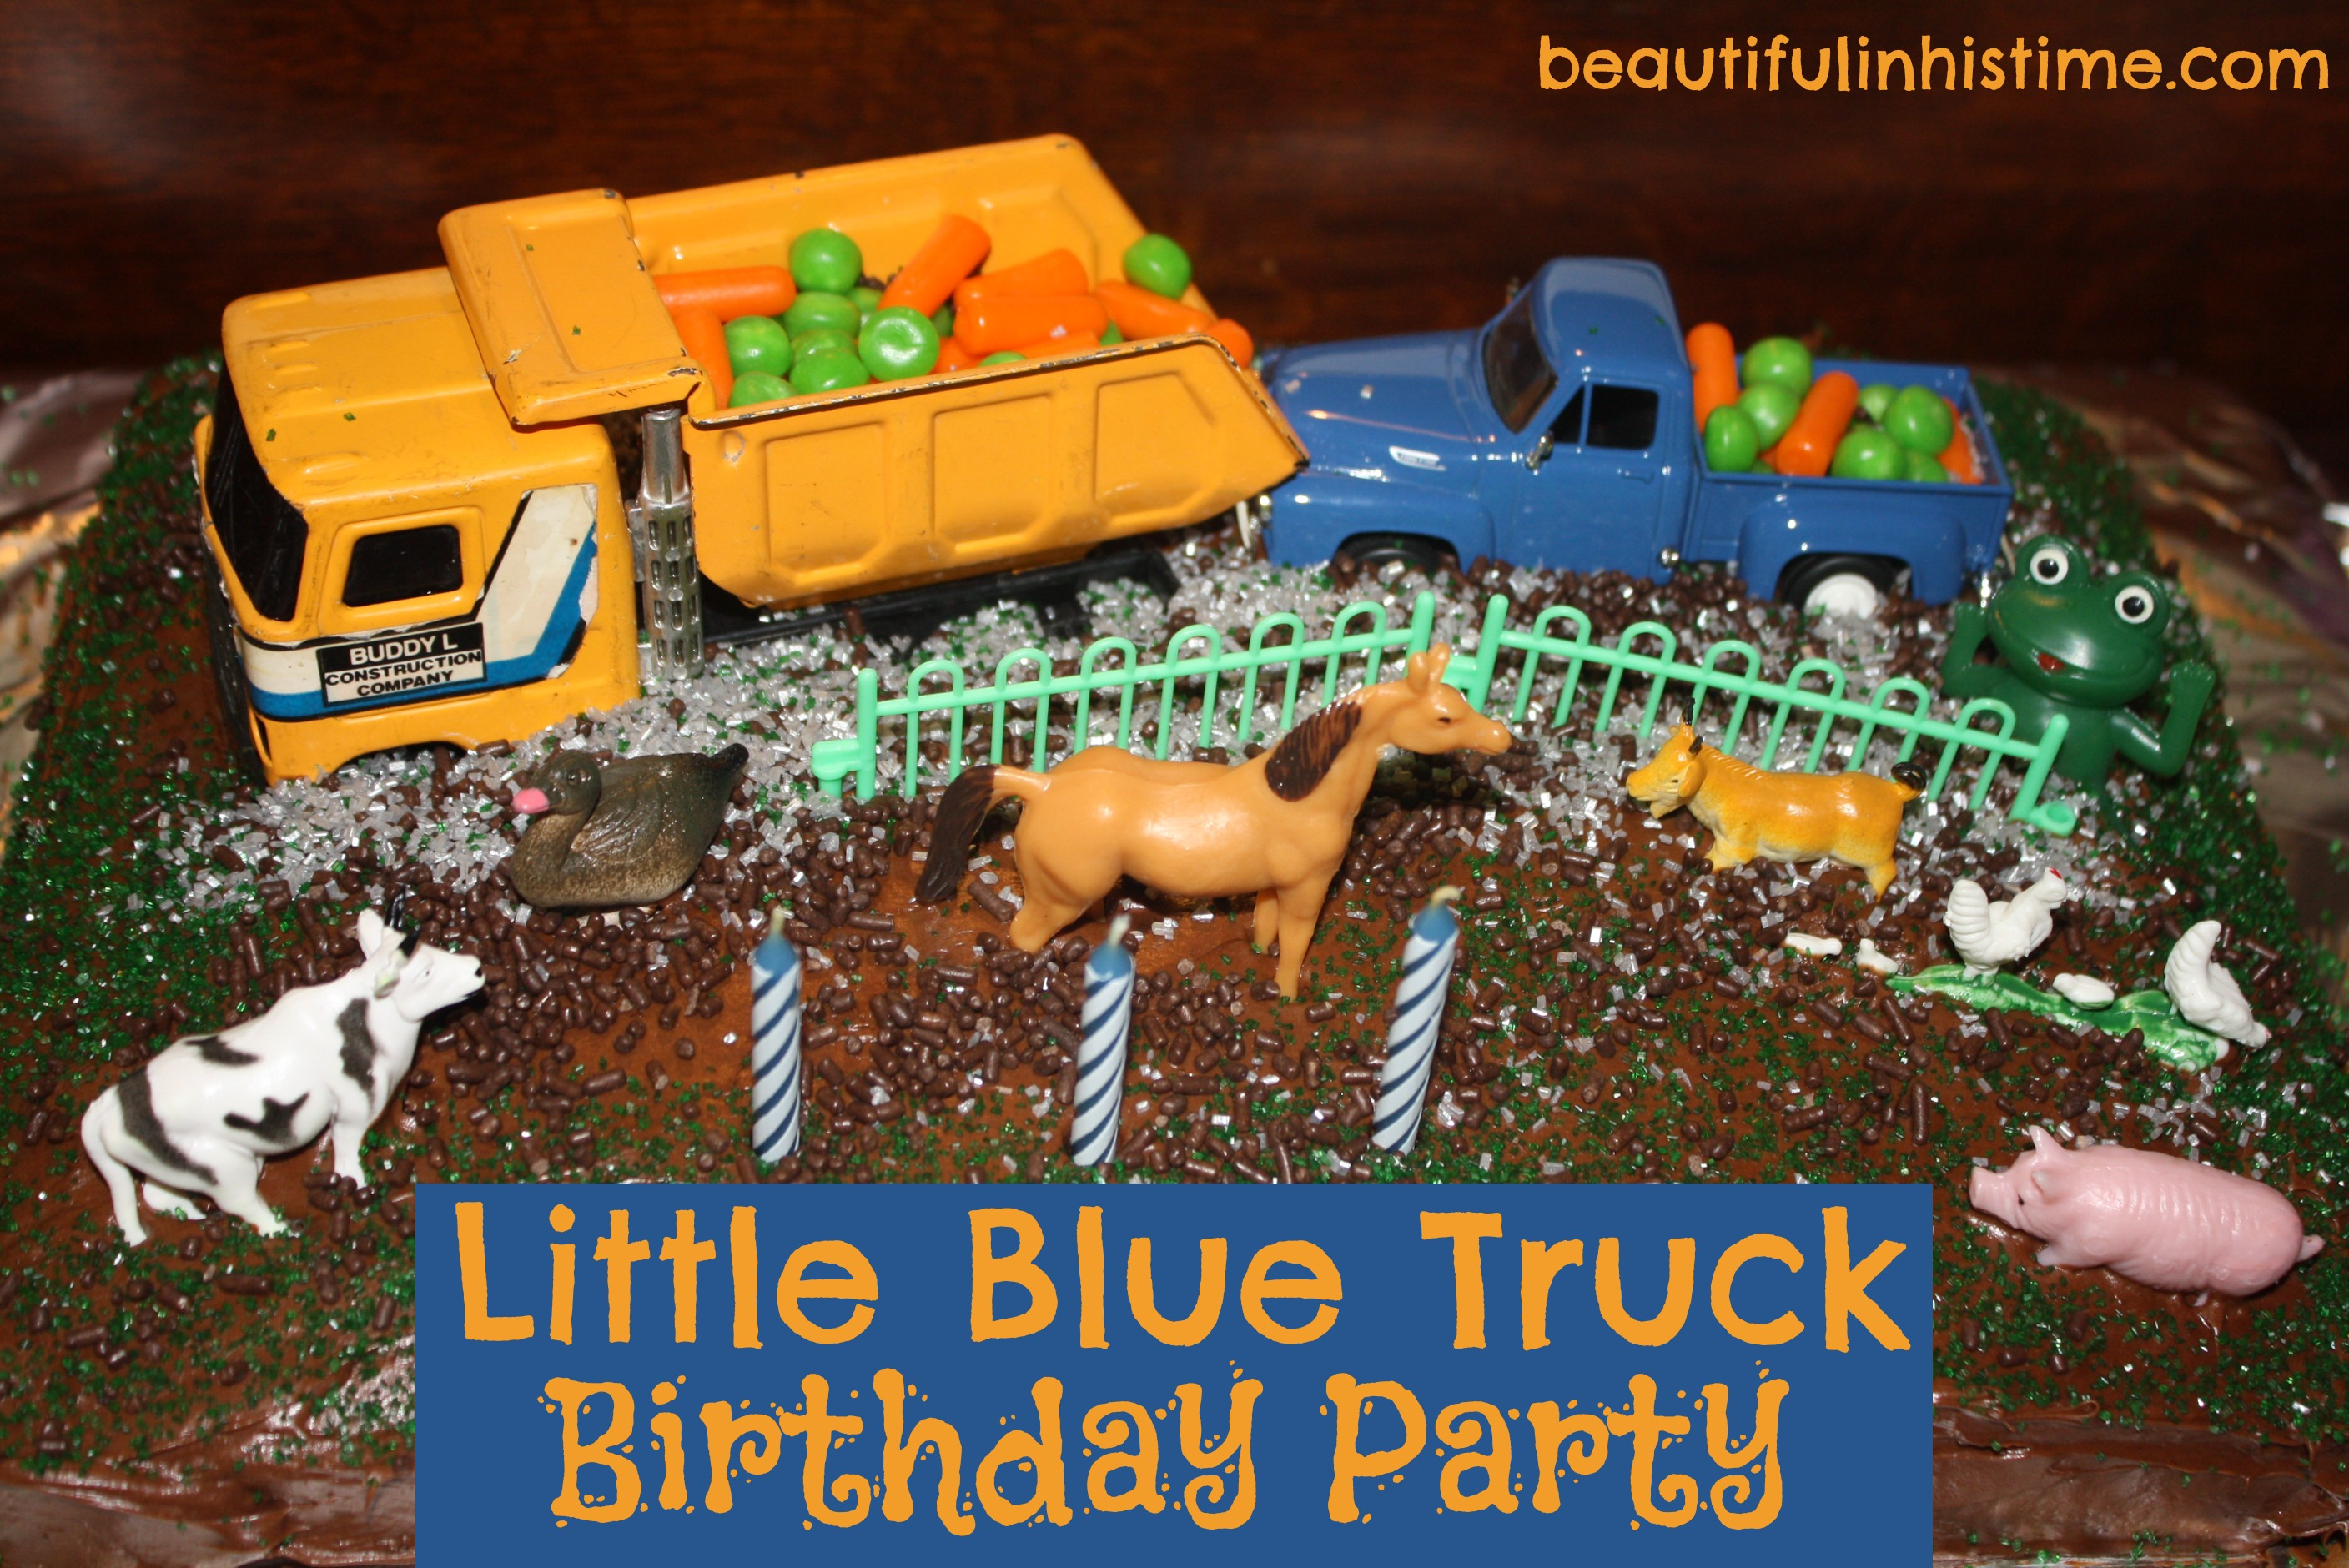 Little Blue Truck Birthday Party